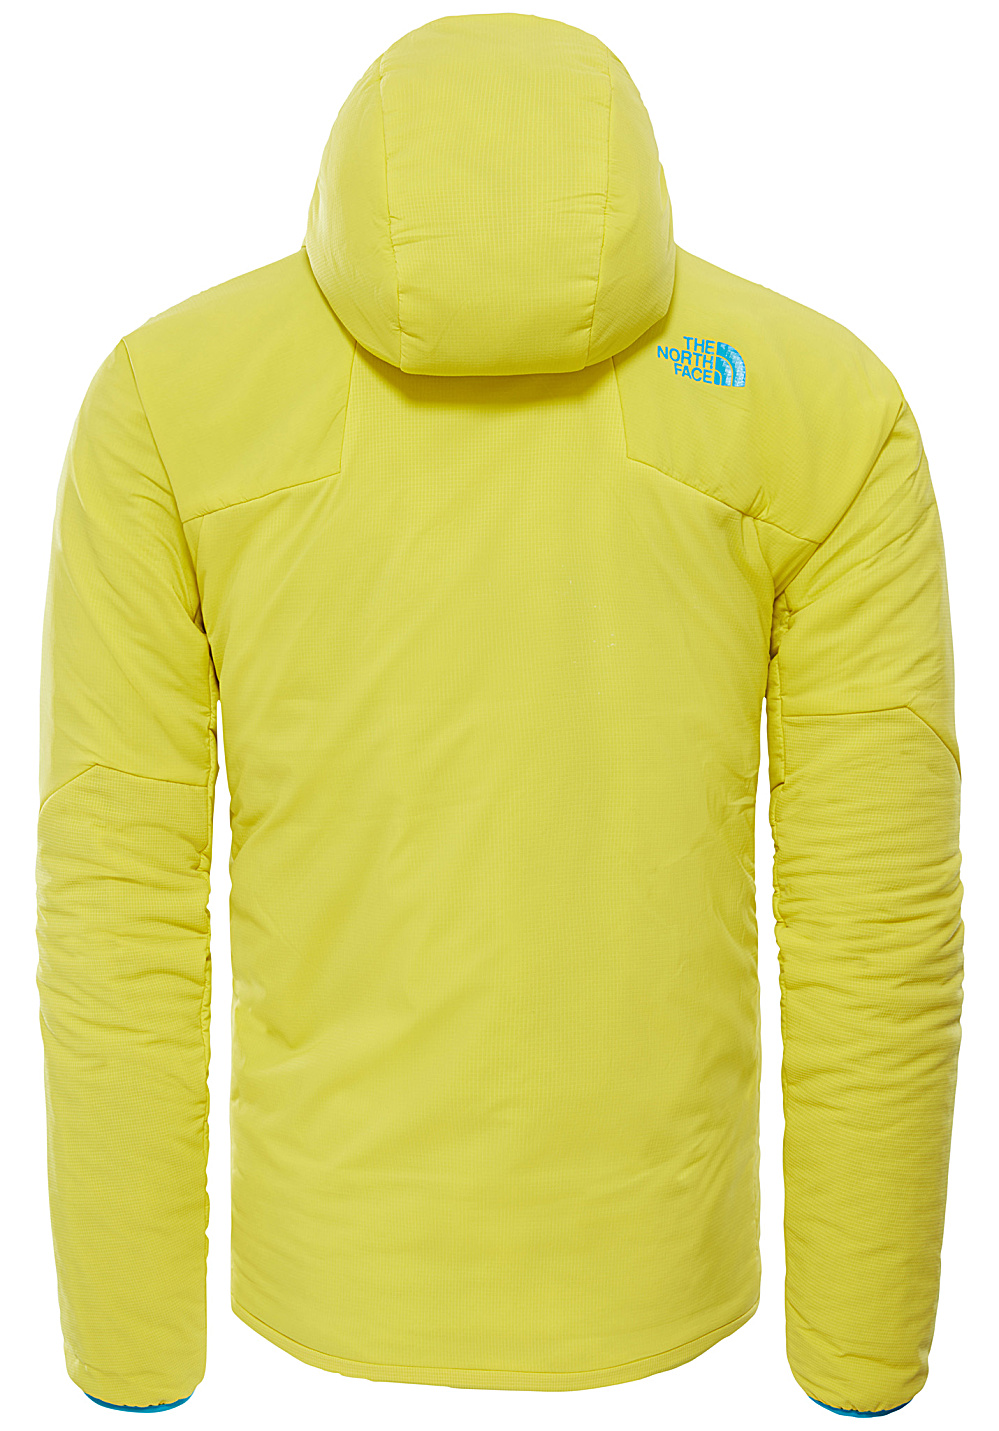 994d65c29 THE NORTH FACE Ventrix - Outdoor Jacket for Men - Yellow